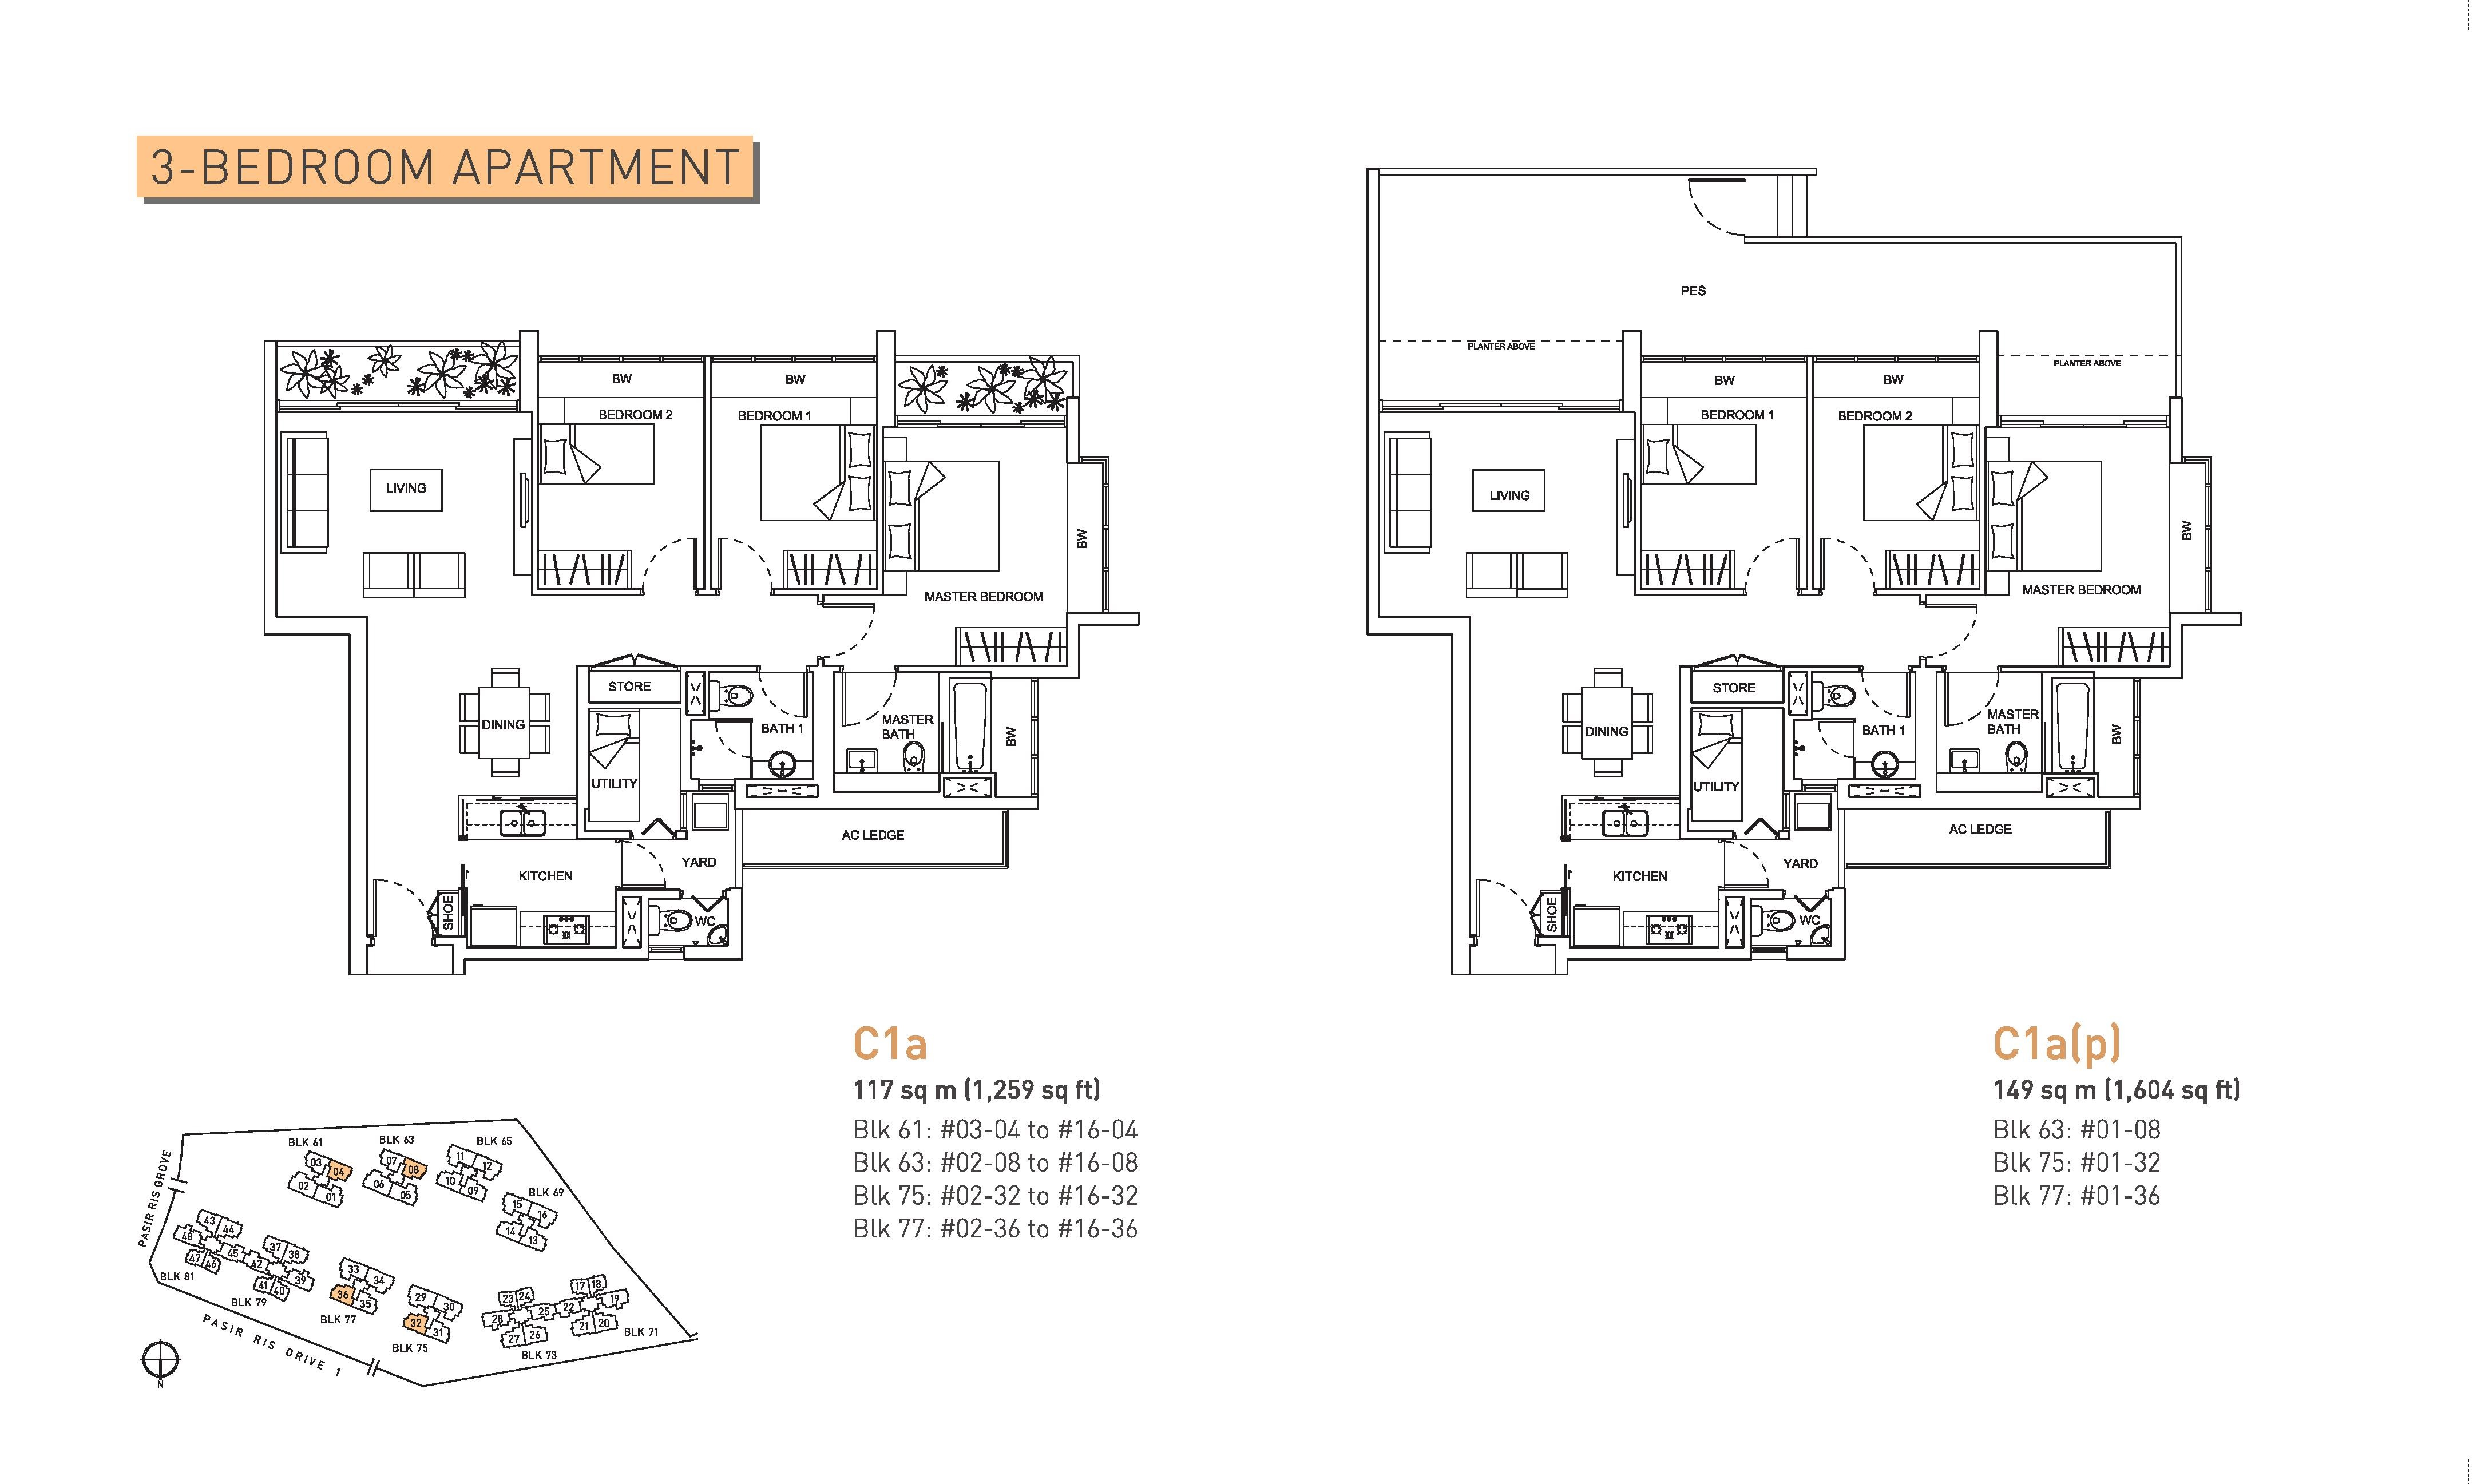 Livia 3 Bedroom Floor Plans Type C1a and C1a(p)